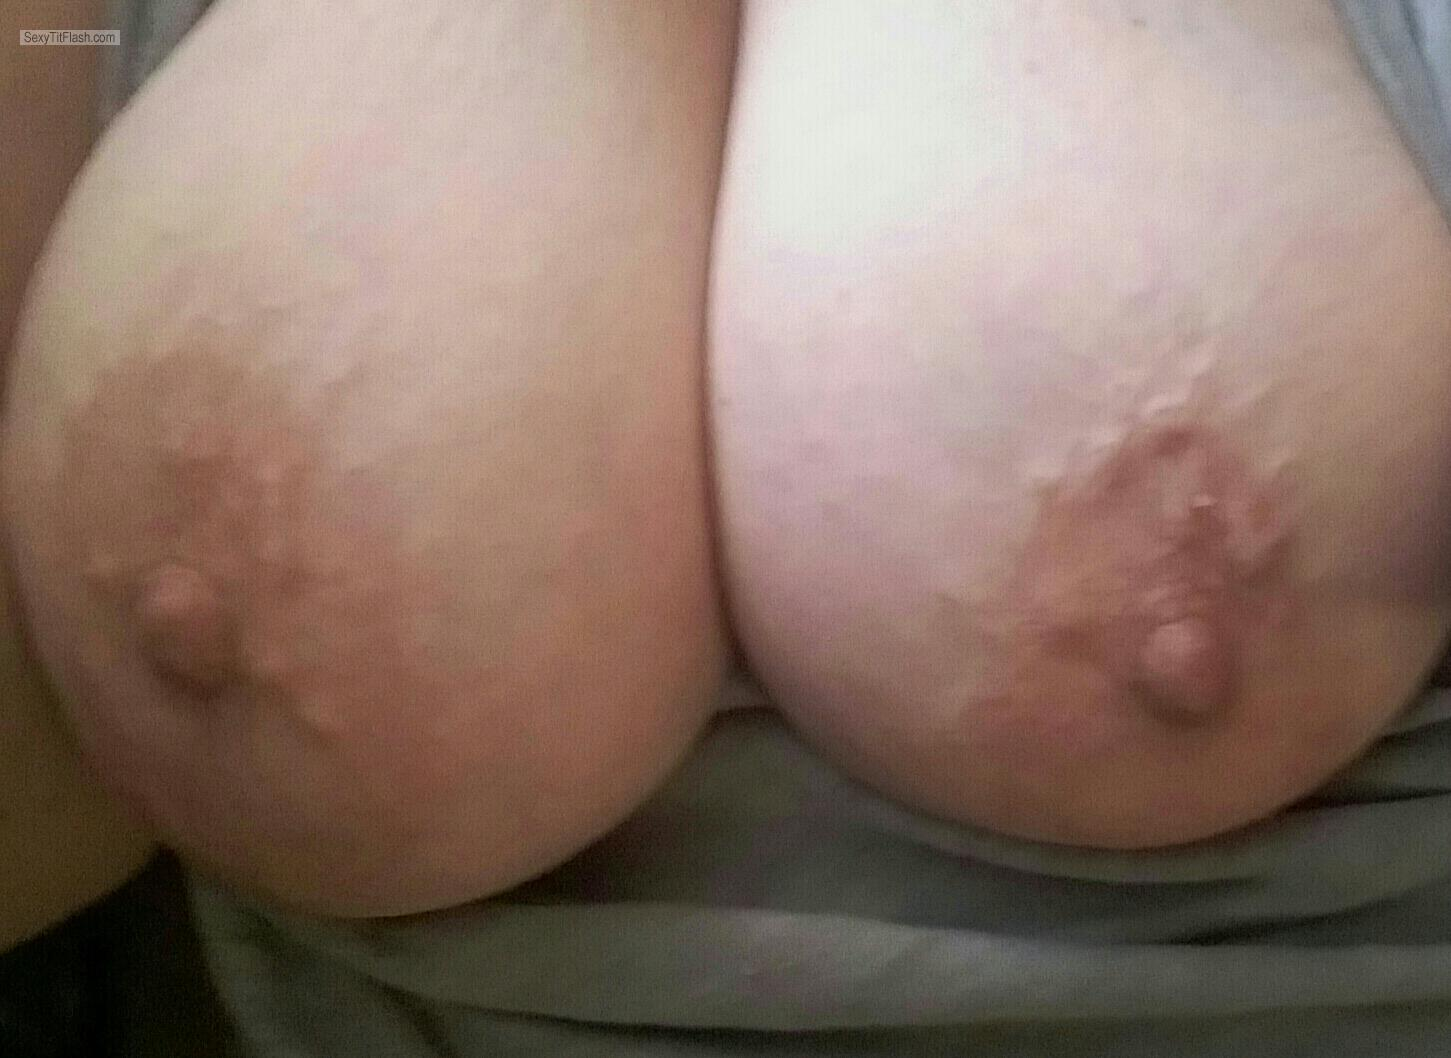 My Very big Tits Selfie by Sharon Lynn